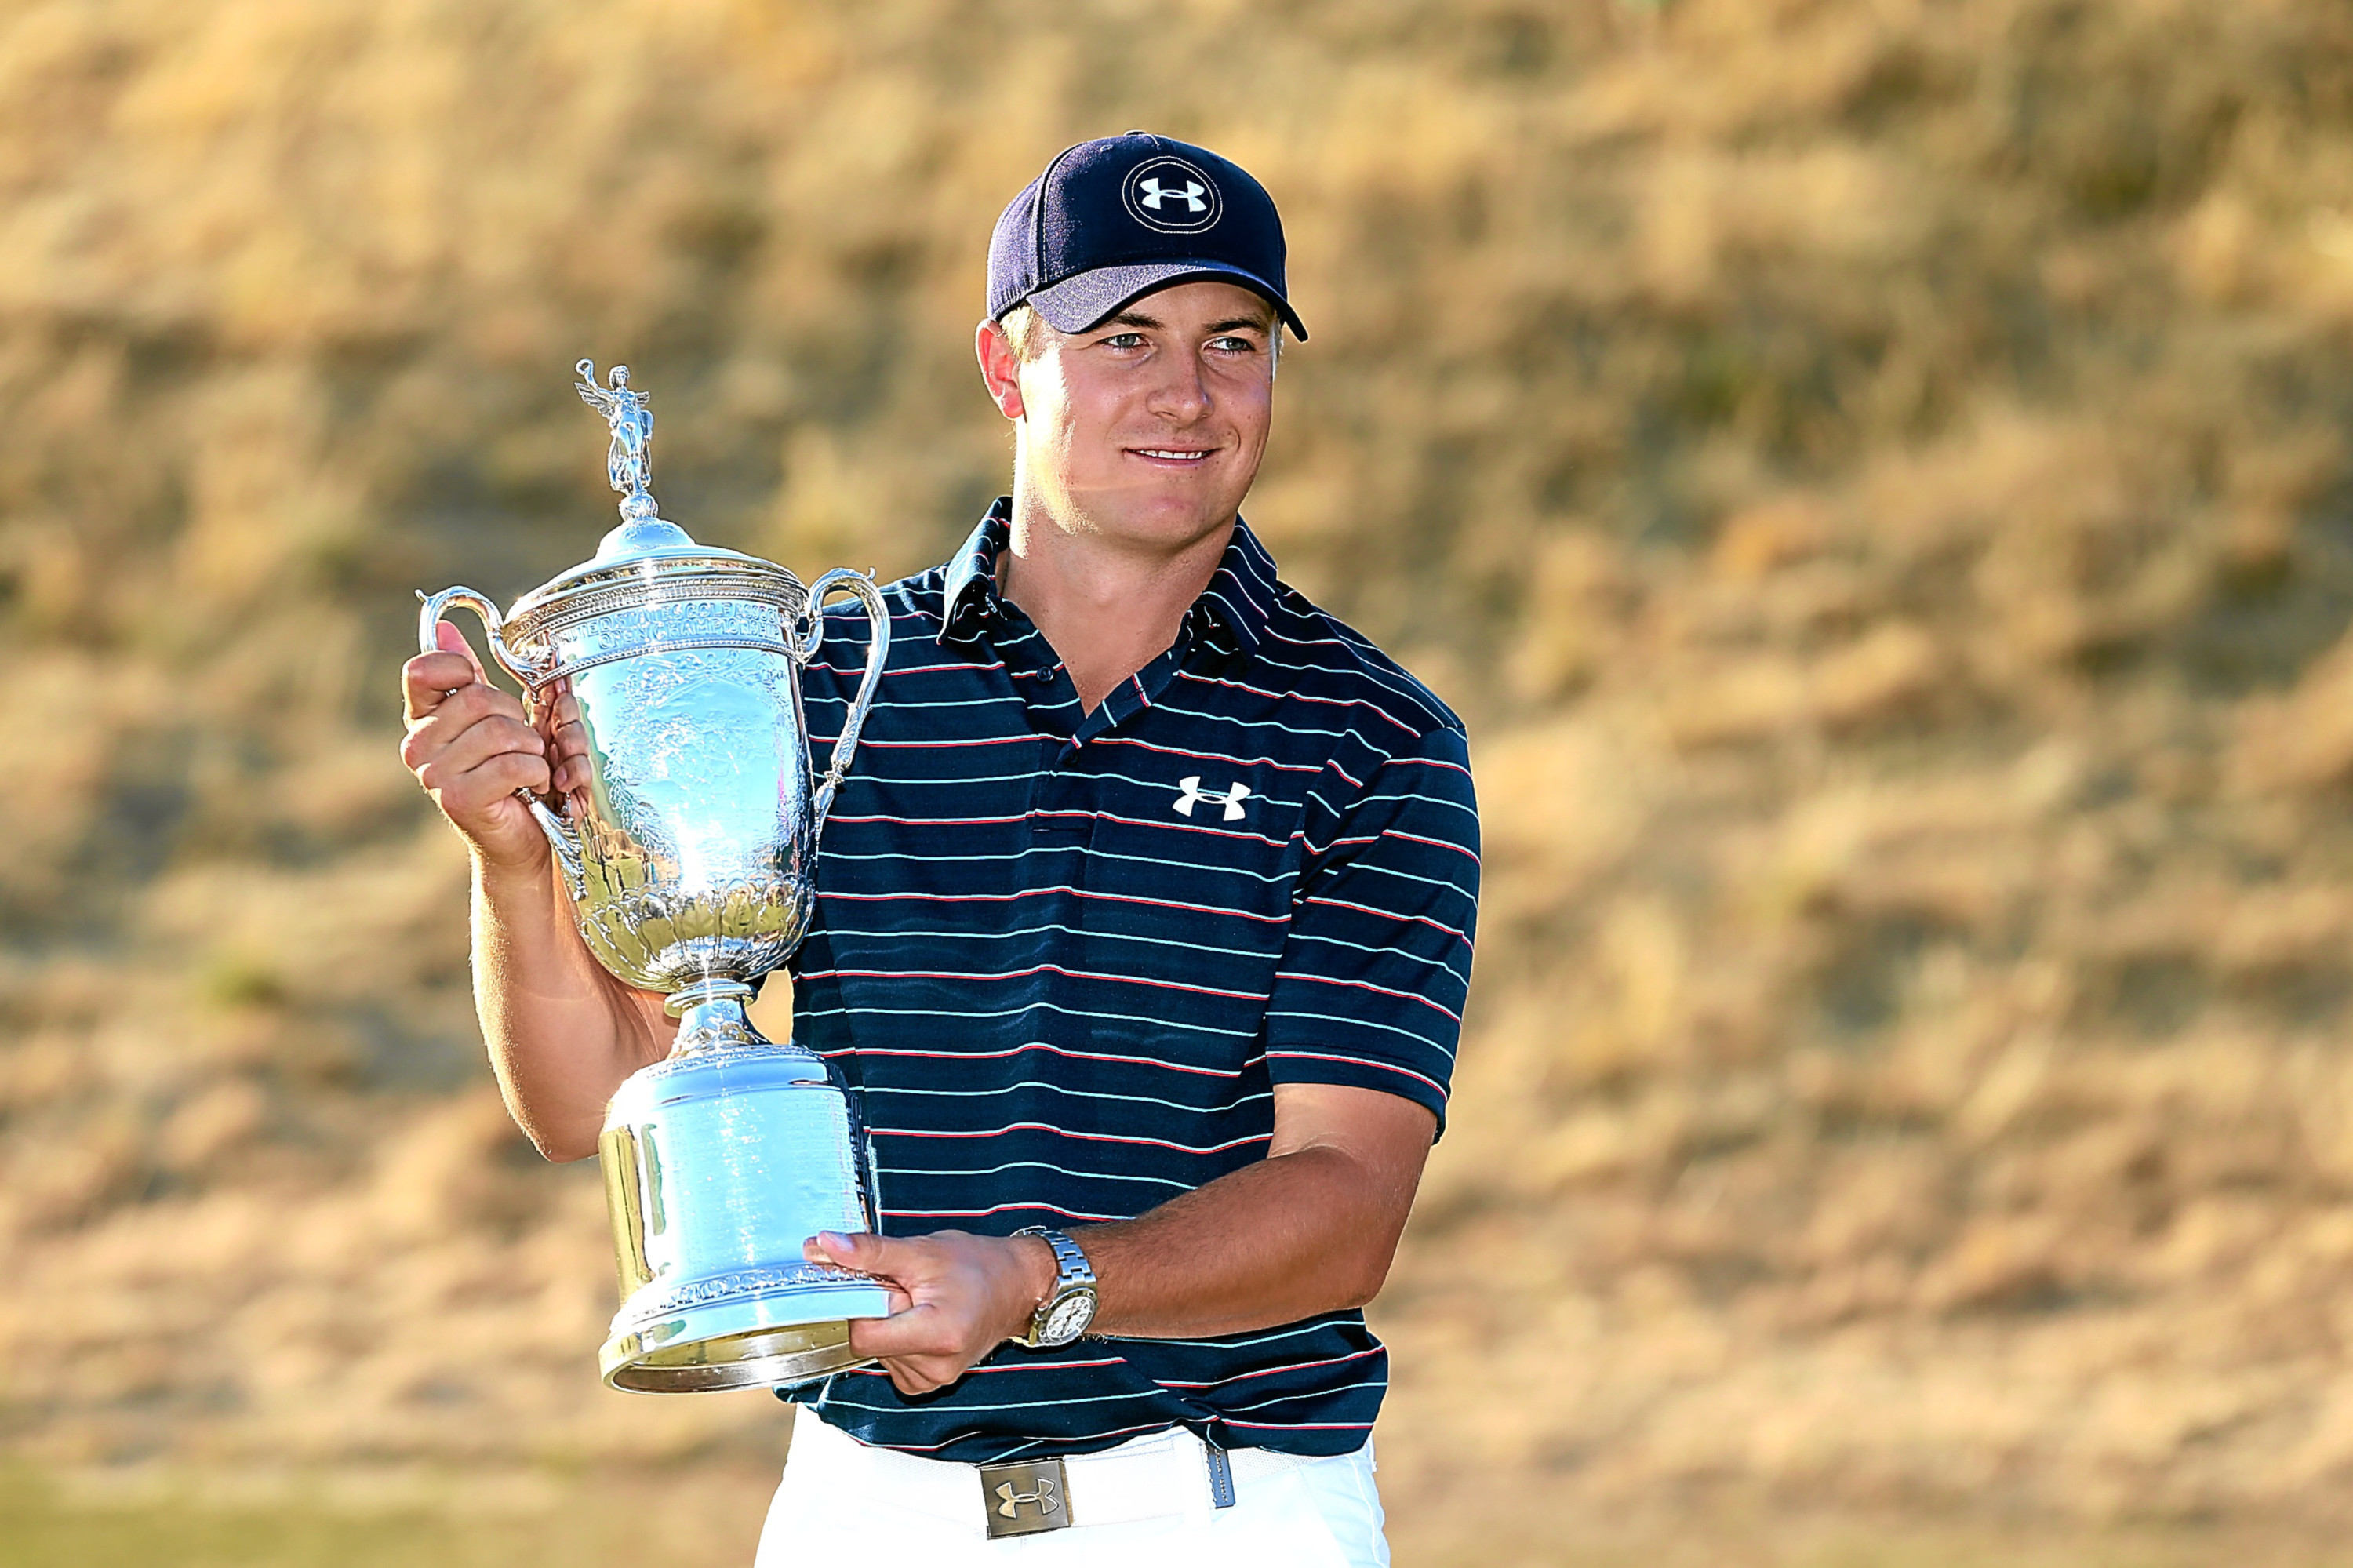 Jordan Spieth poses with the trophy after winning the 115th US Open Championship.